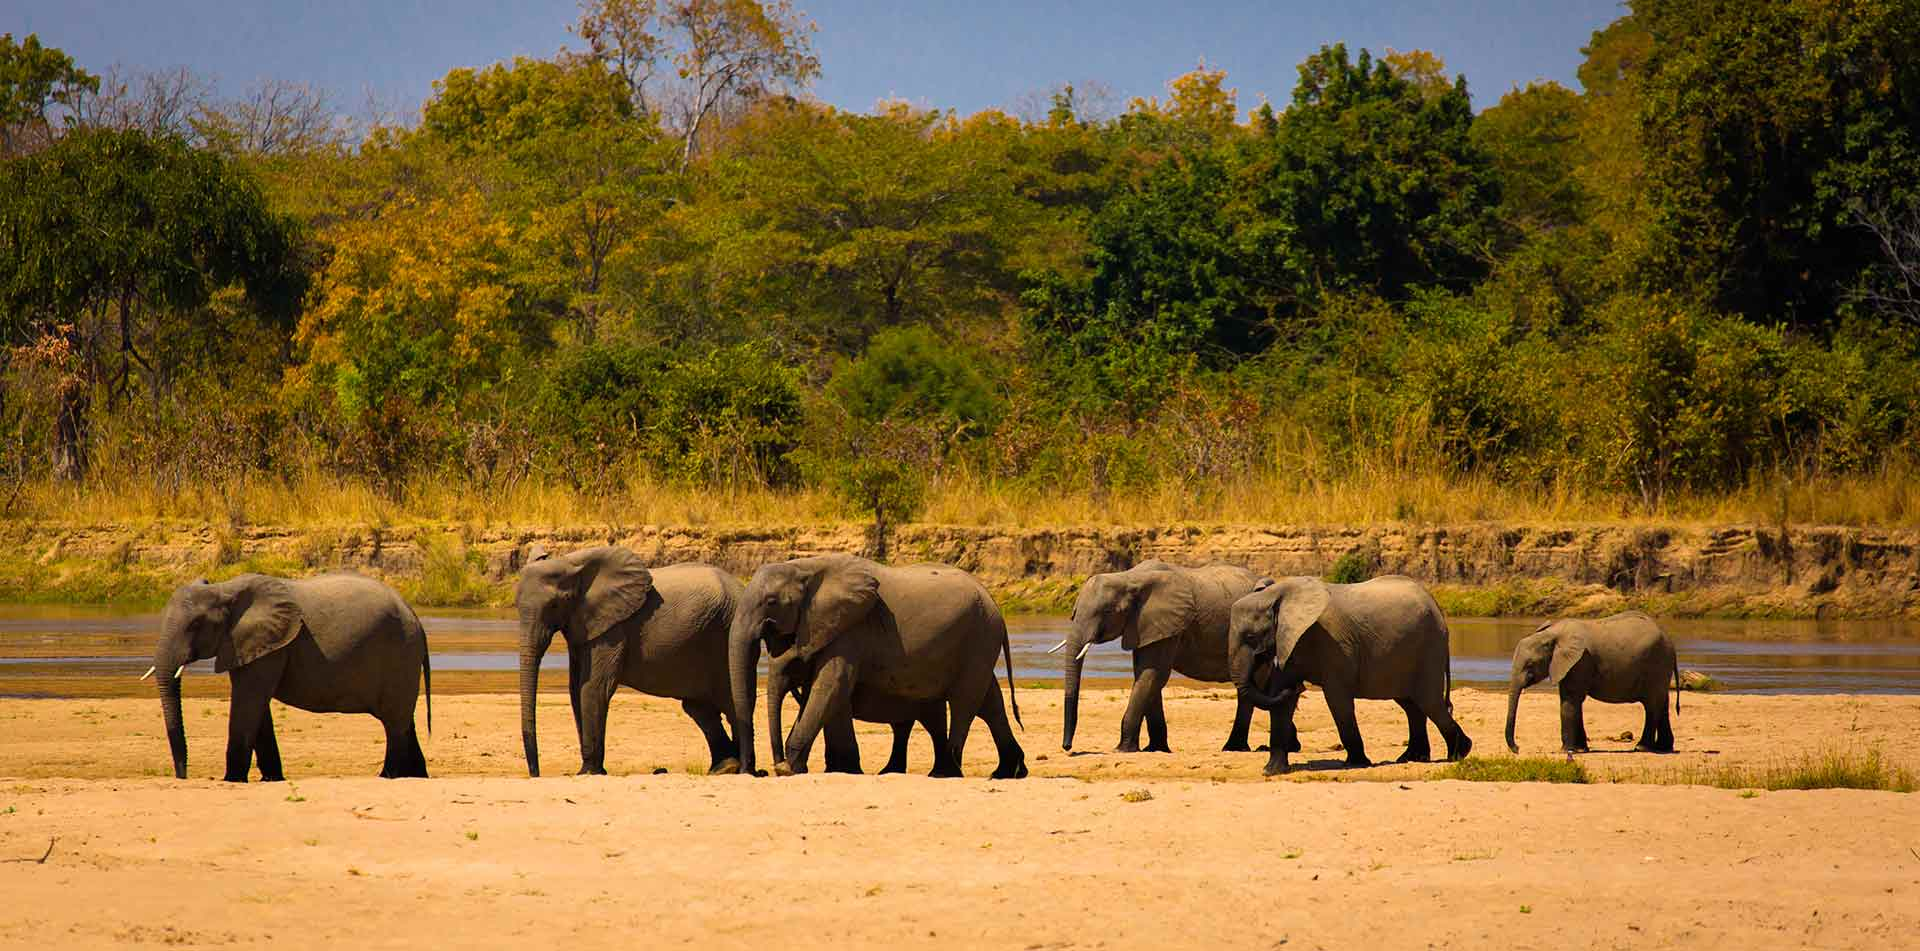 Herd of elephants in South Luangwa Park, Zambia